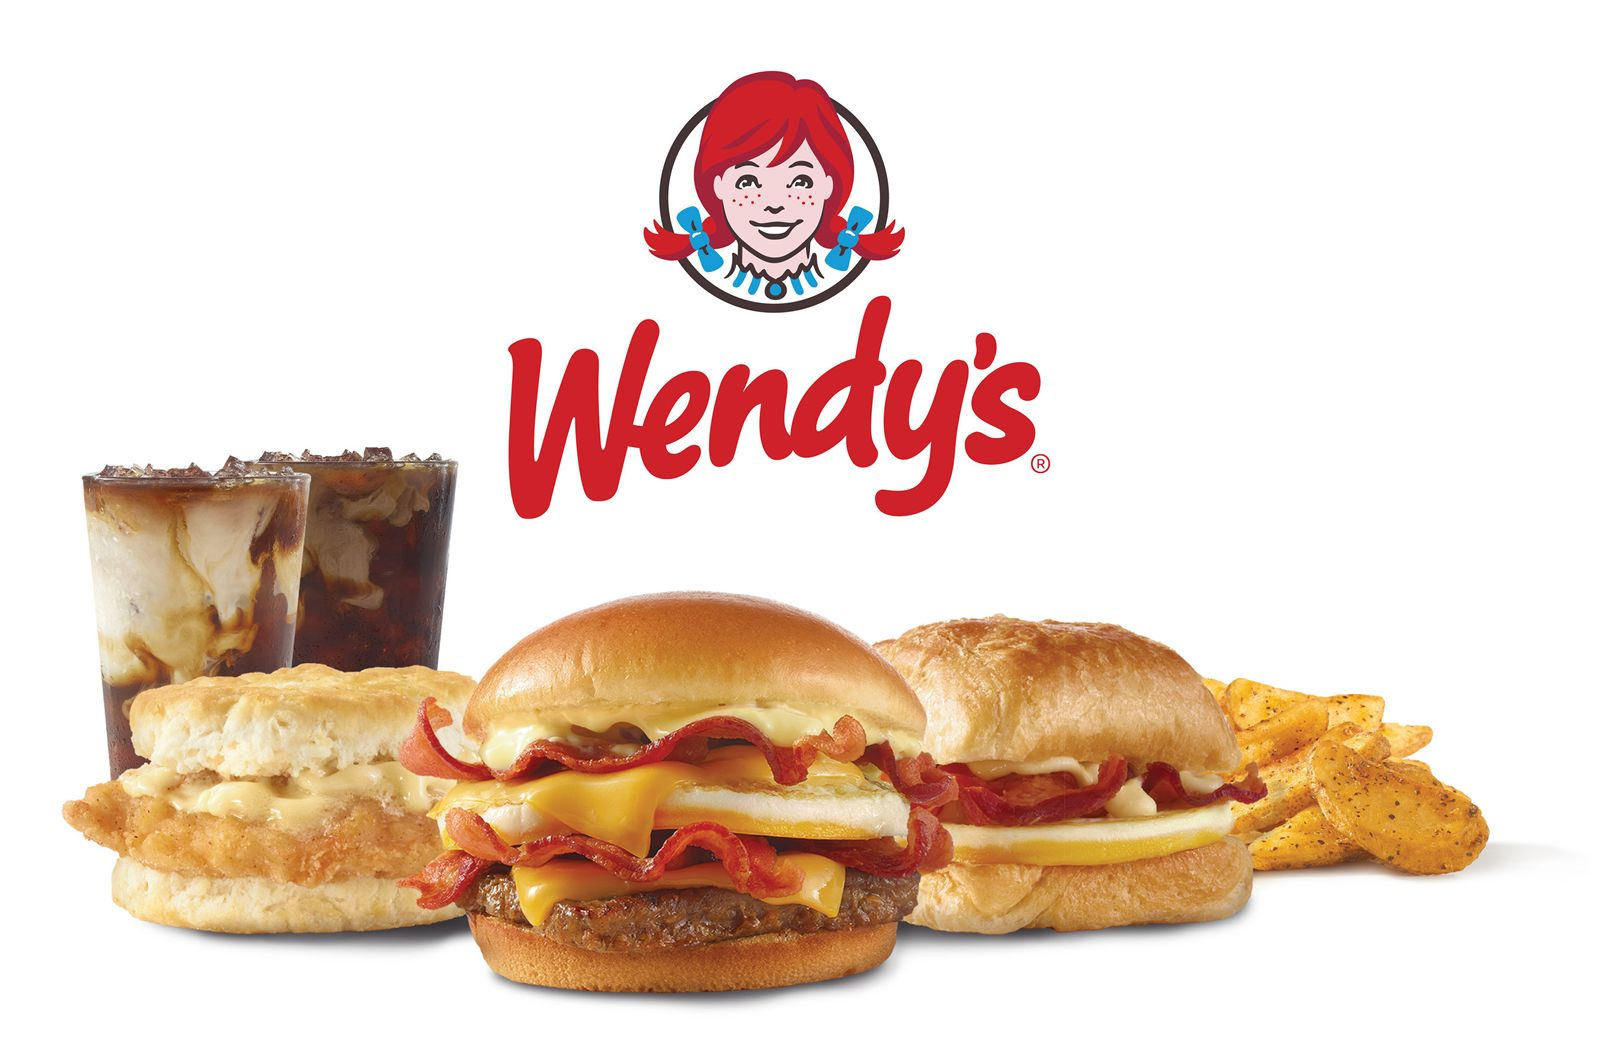 Wendy's Announces Plans to Launch Breakfast Across the U.S. System in 2020